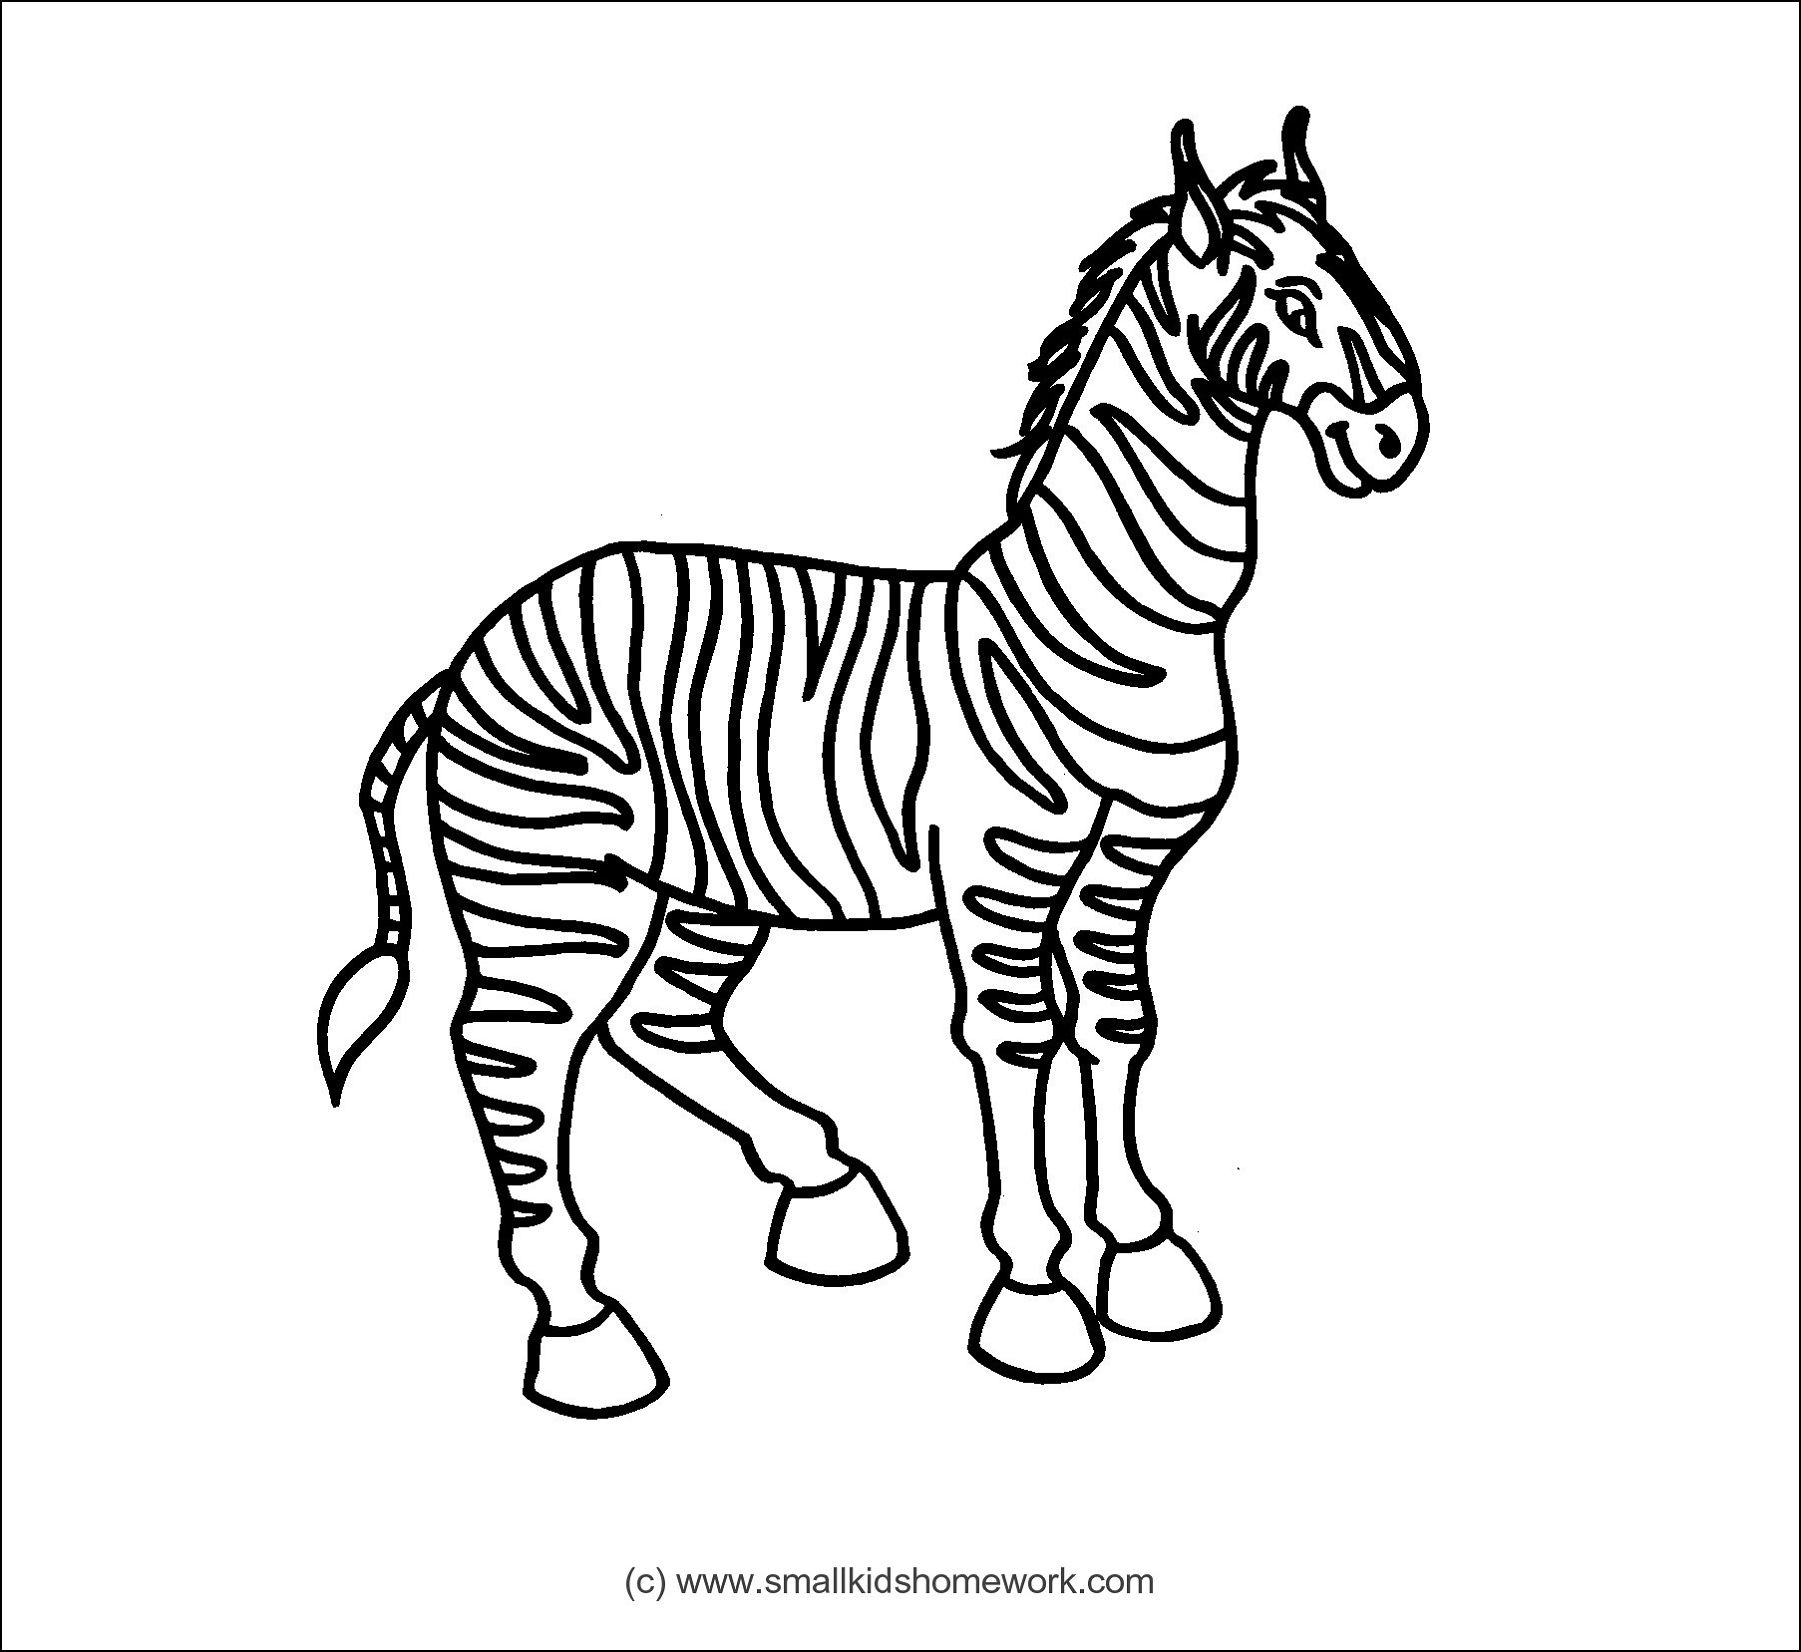 Zebra Outline Picture | Outline Pictures | Pinterest | Outline pictures